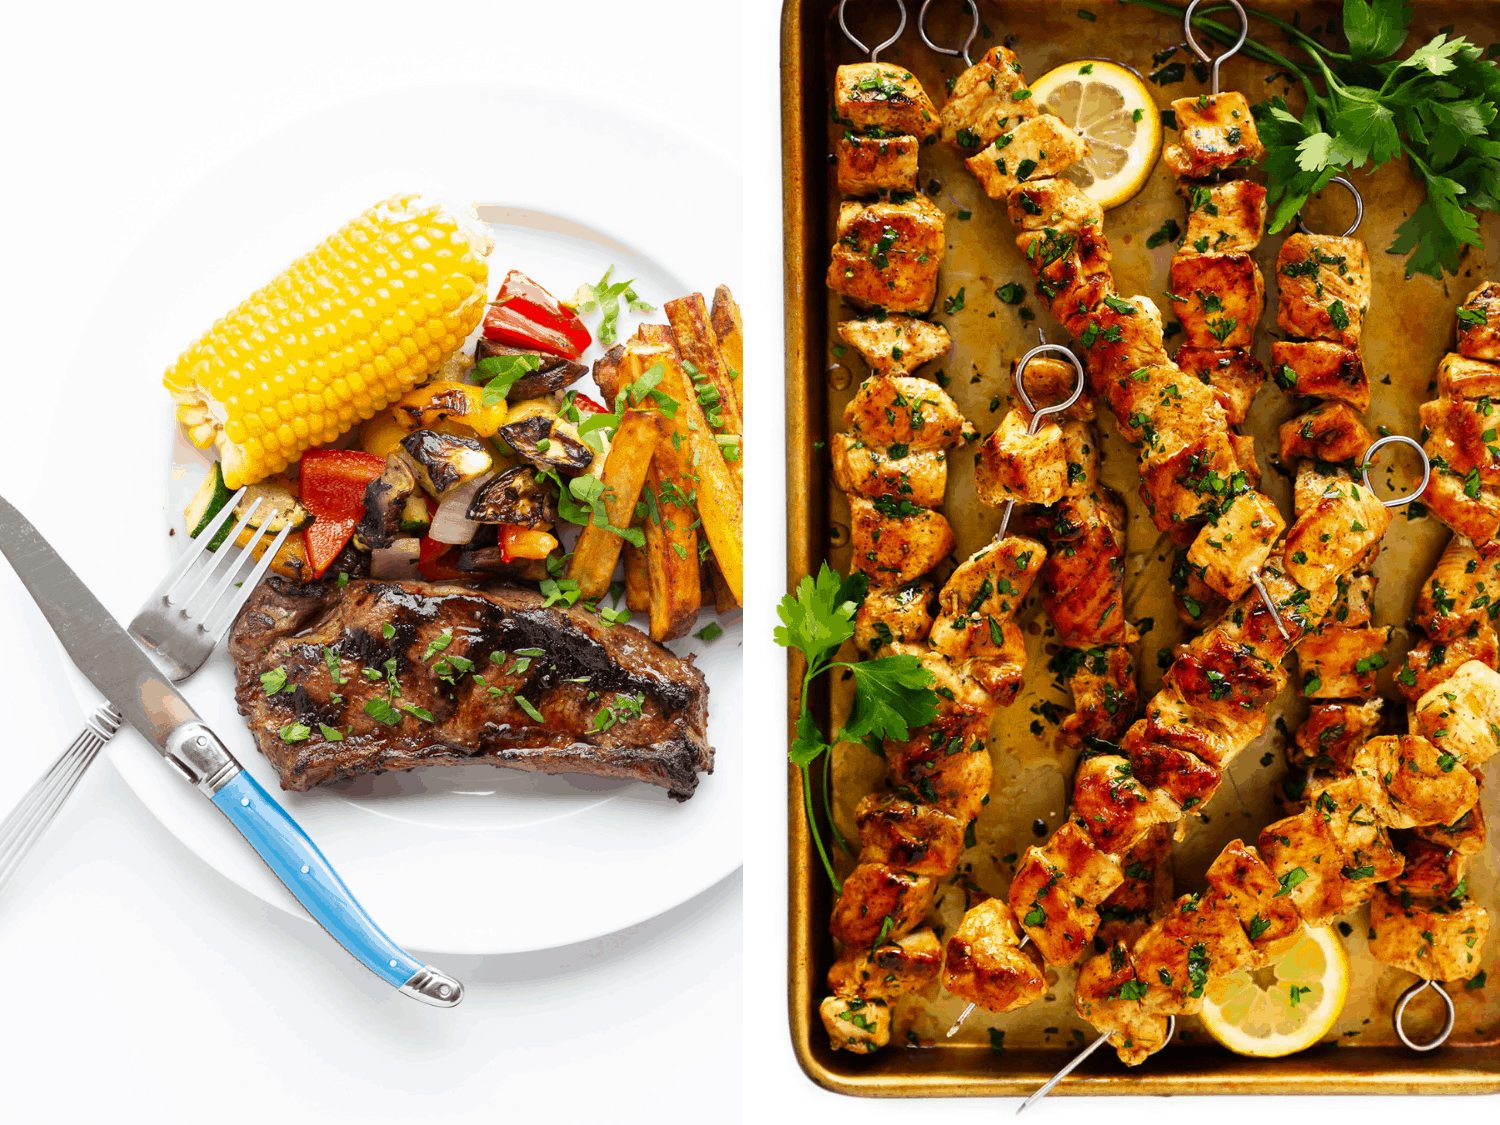 Photo collage of marinated grilled steaks and grilled chicken kabobs